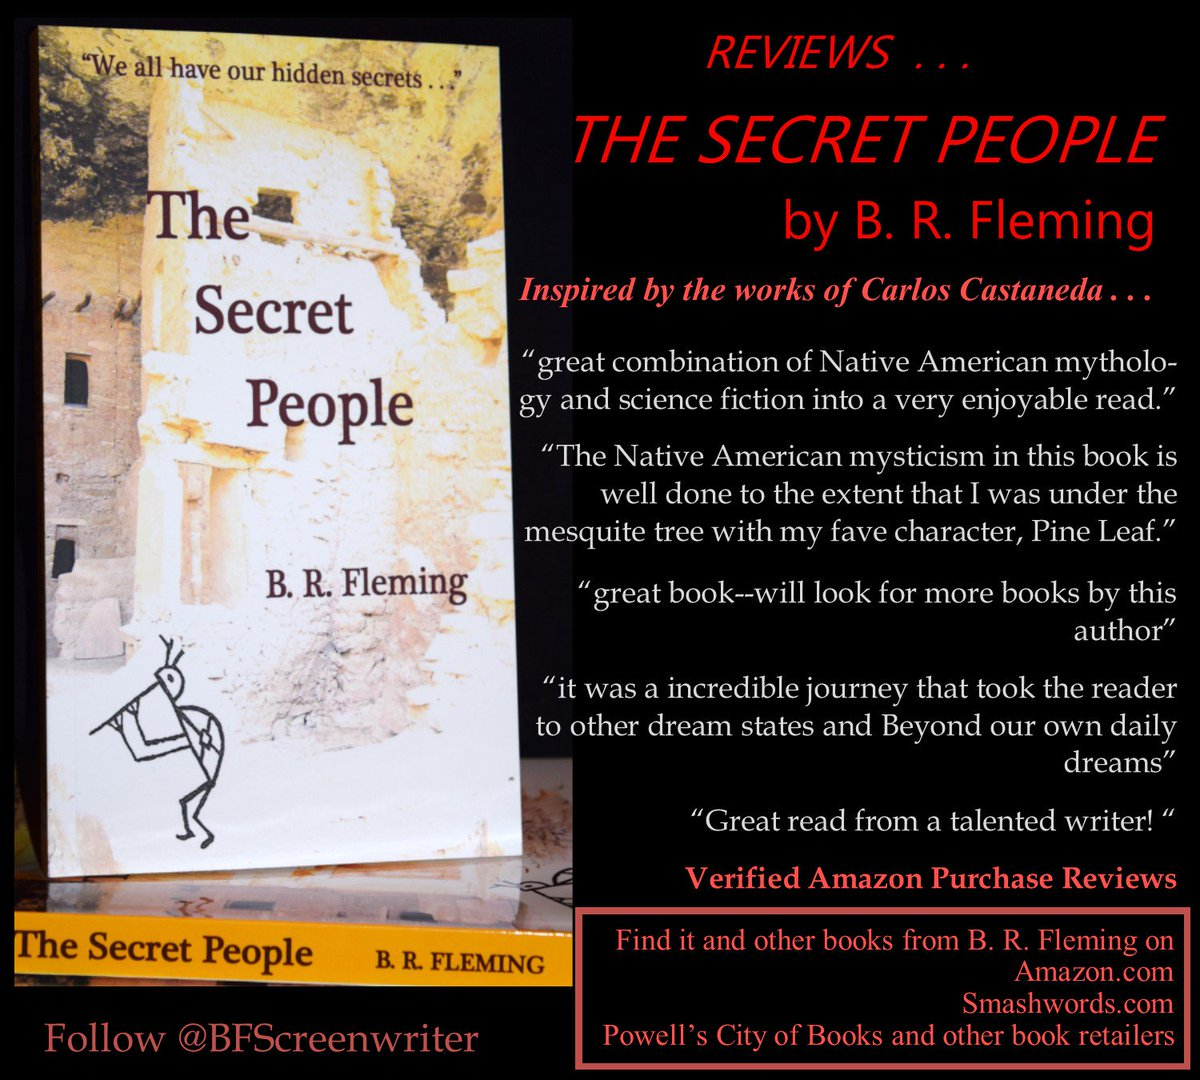 🏜️#TheSecretPeople🏜️ #NativeTwitter #IARTG @AmazngBooks @AmazonUK @amazonbooks @Pizzazz_Books @ReadersGazette @IAN_AuthorPromo @BookViral @AuthorAlliance @AvidReadersCafe📚 @latimesbooks @BookClubPro1 @TheBookTweeters #IndieBooksPromo #IndieBooksBeSeen📚 #LitFic #WW #HumpDay🐫🐪